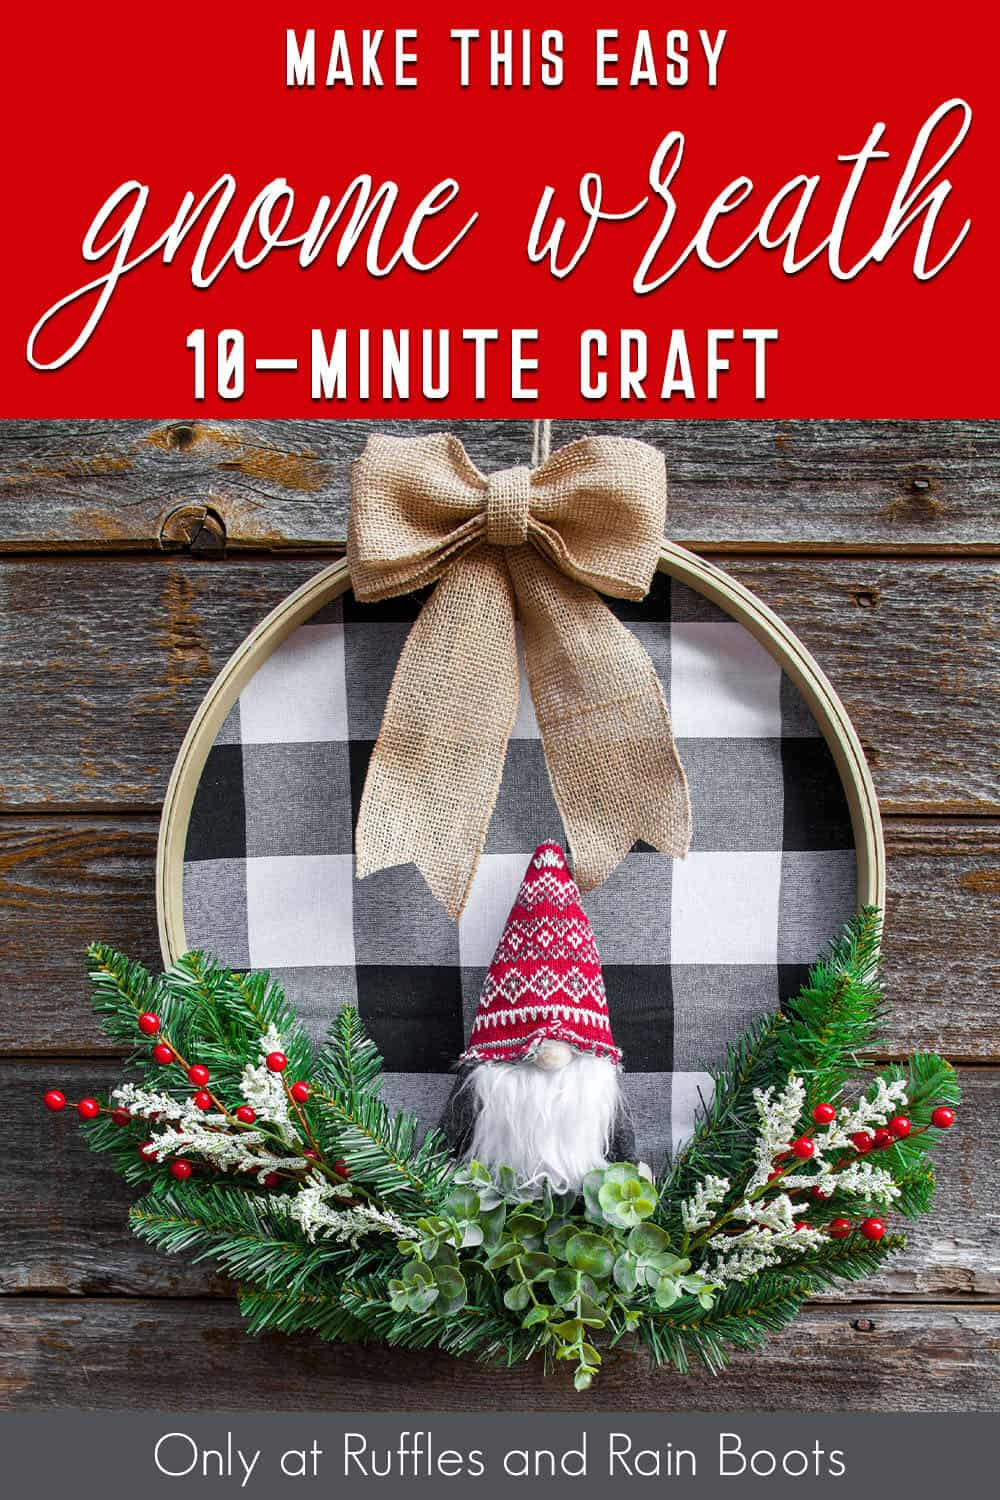 easy diy scandinavian gnome wreath using an embroidery hoop with text which reads make this easy gnome wreath 10-minute craft